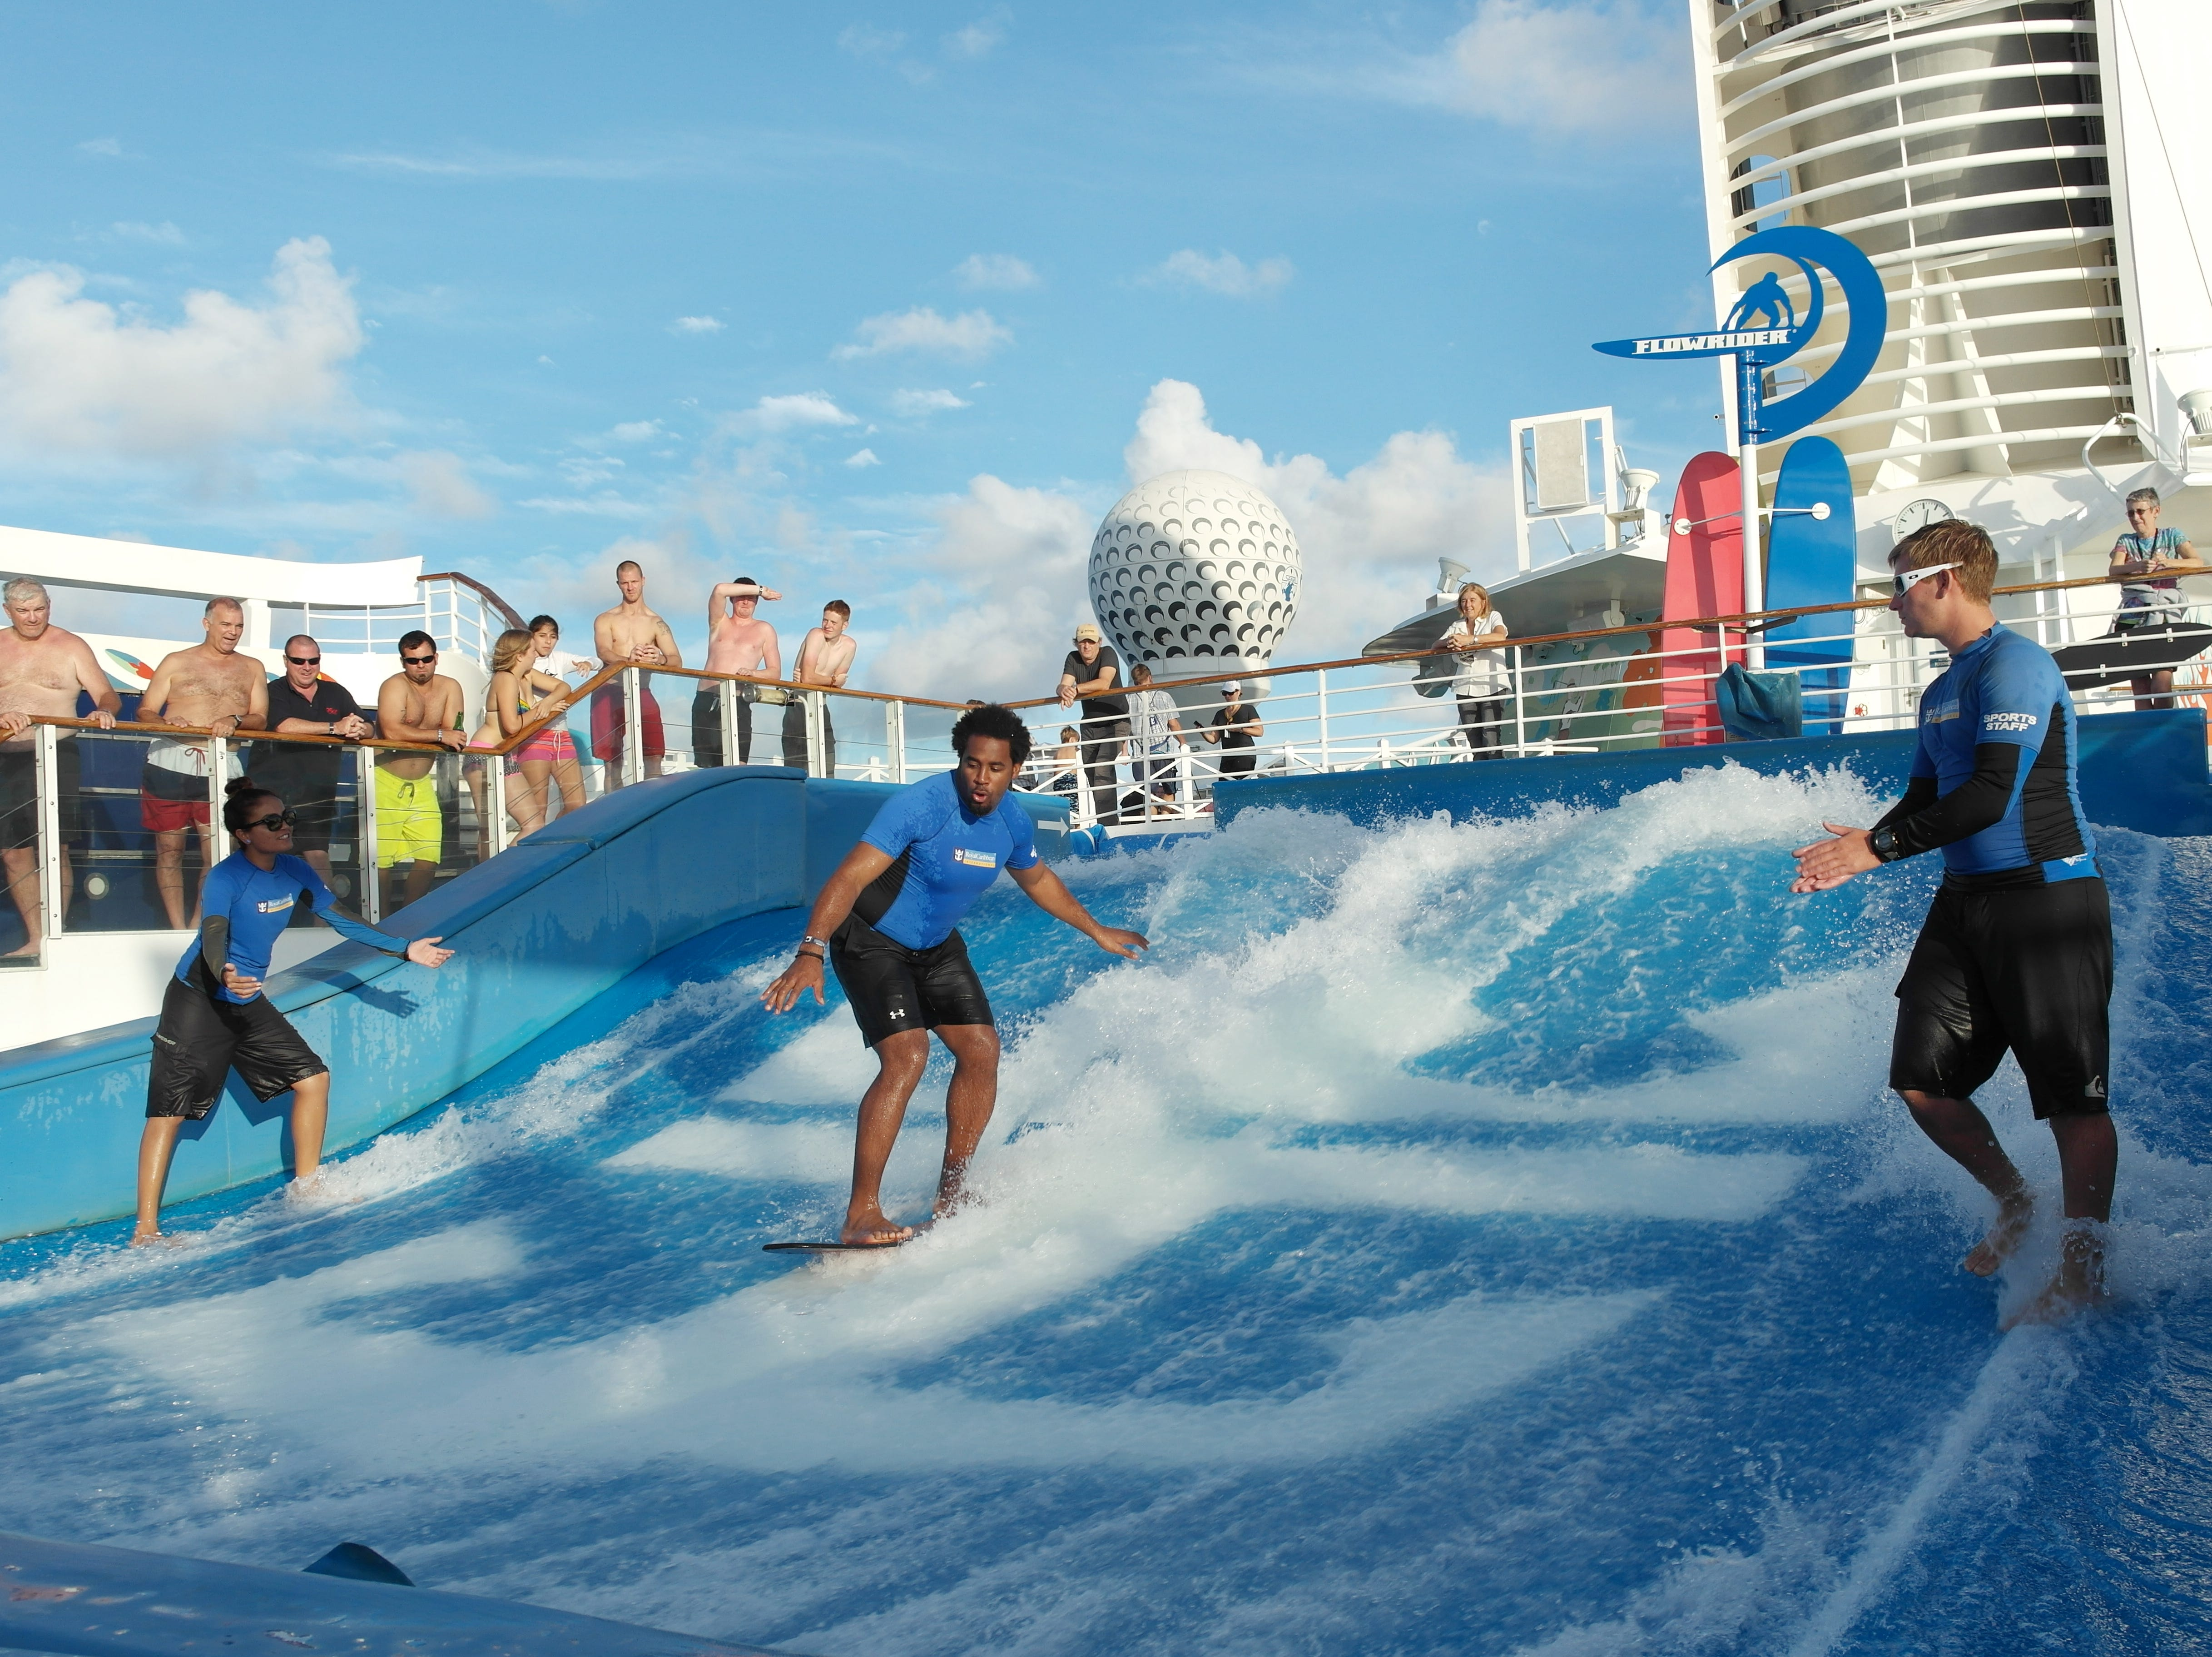 Royal Caribbean has made waves in recent years with the debut of FlowRider surfing pools on its ships.